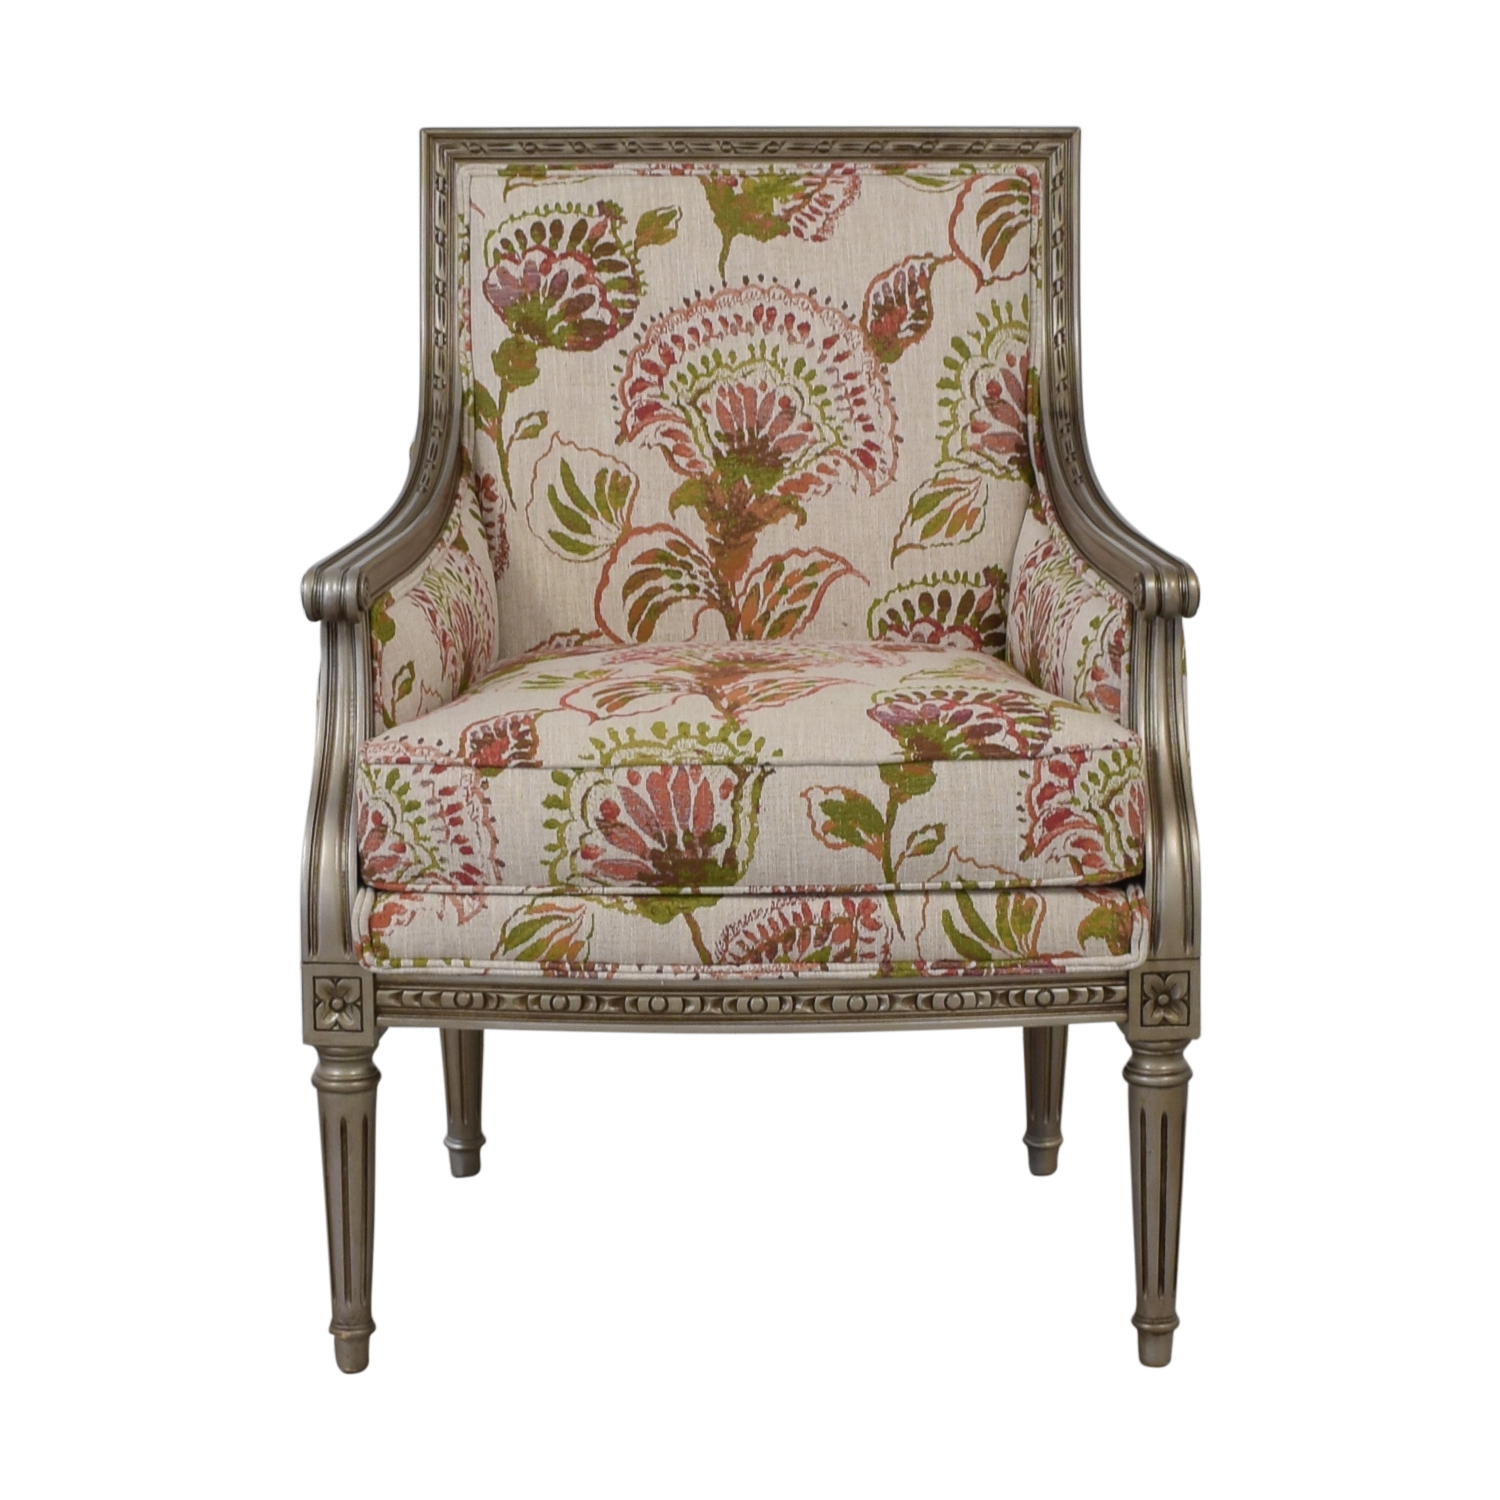 Ethan Allen Ethan Allen Giselle Chair second hand